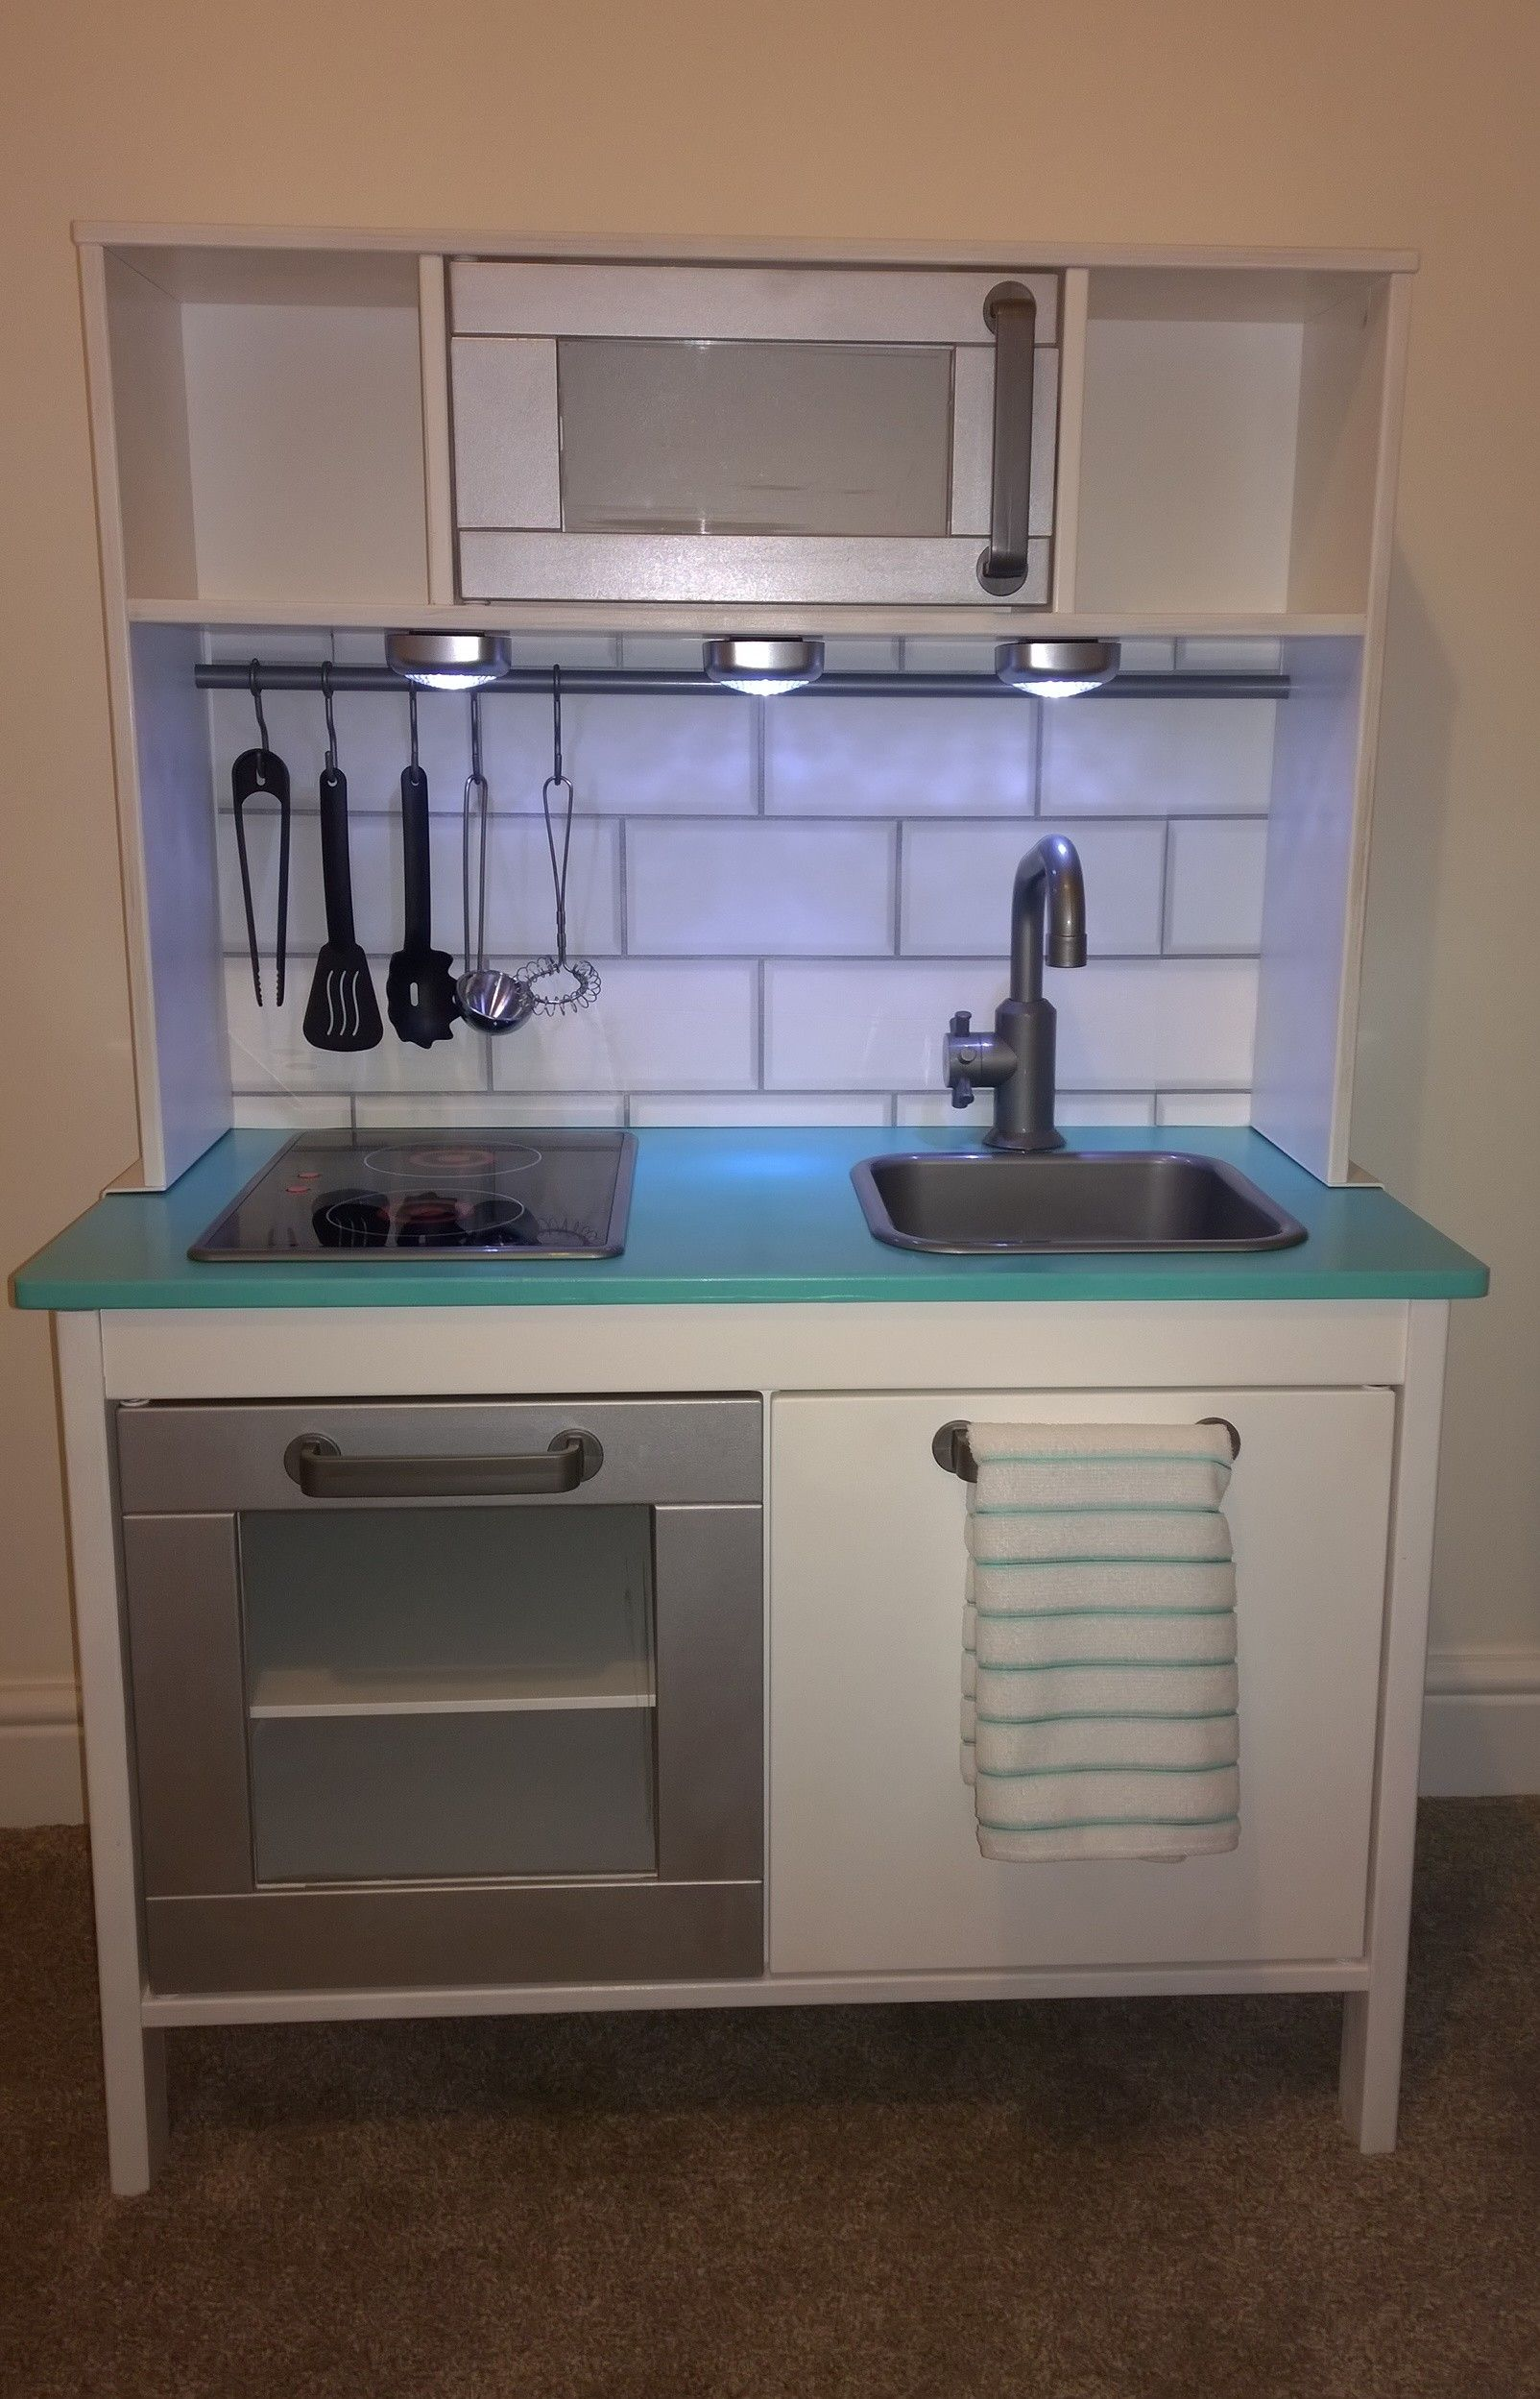 my ikea duktig kitchen makeover deko diy pinterest kinderk che ikea kinderk che und ikea. Black Bedroom Furniture Sets. Home Design Ideas